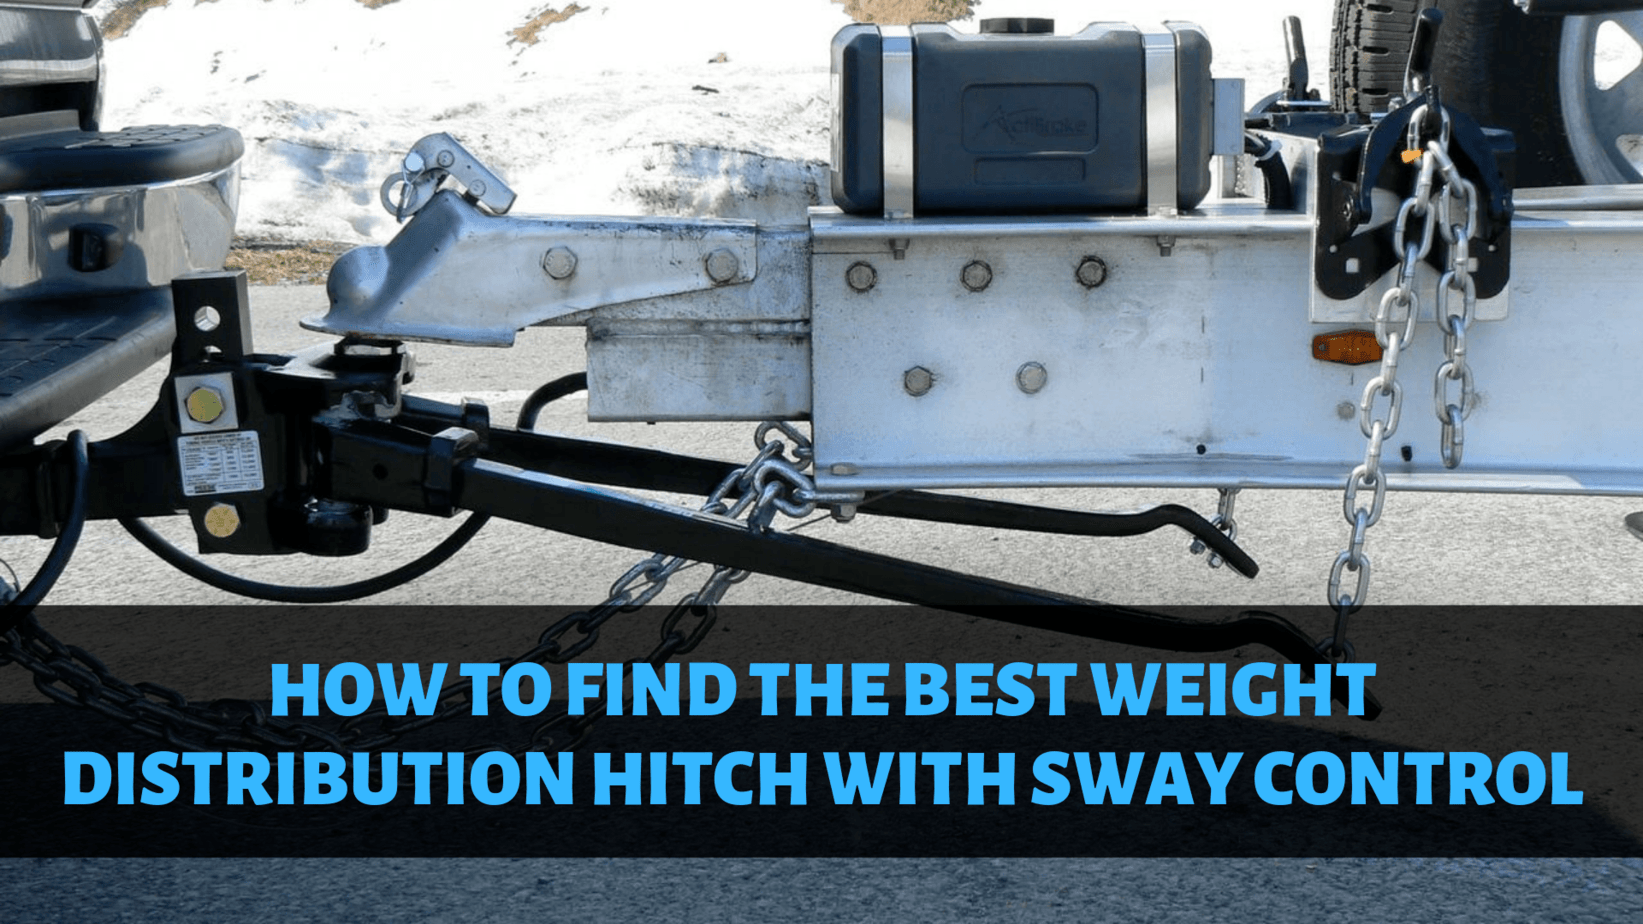 How to Find the Best Weight Distribution Hitch with Sway Control